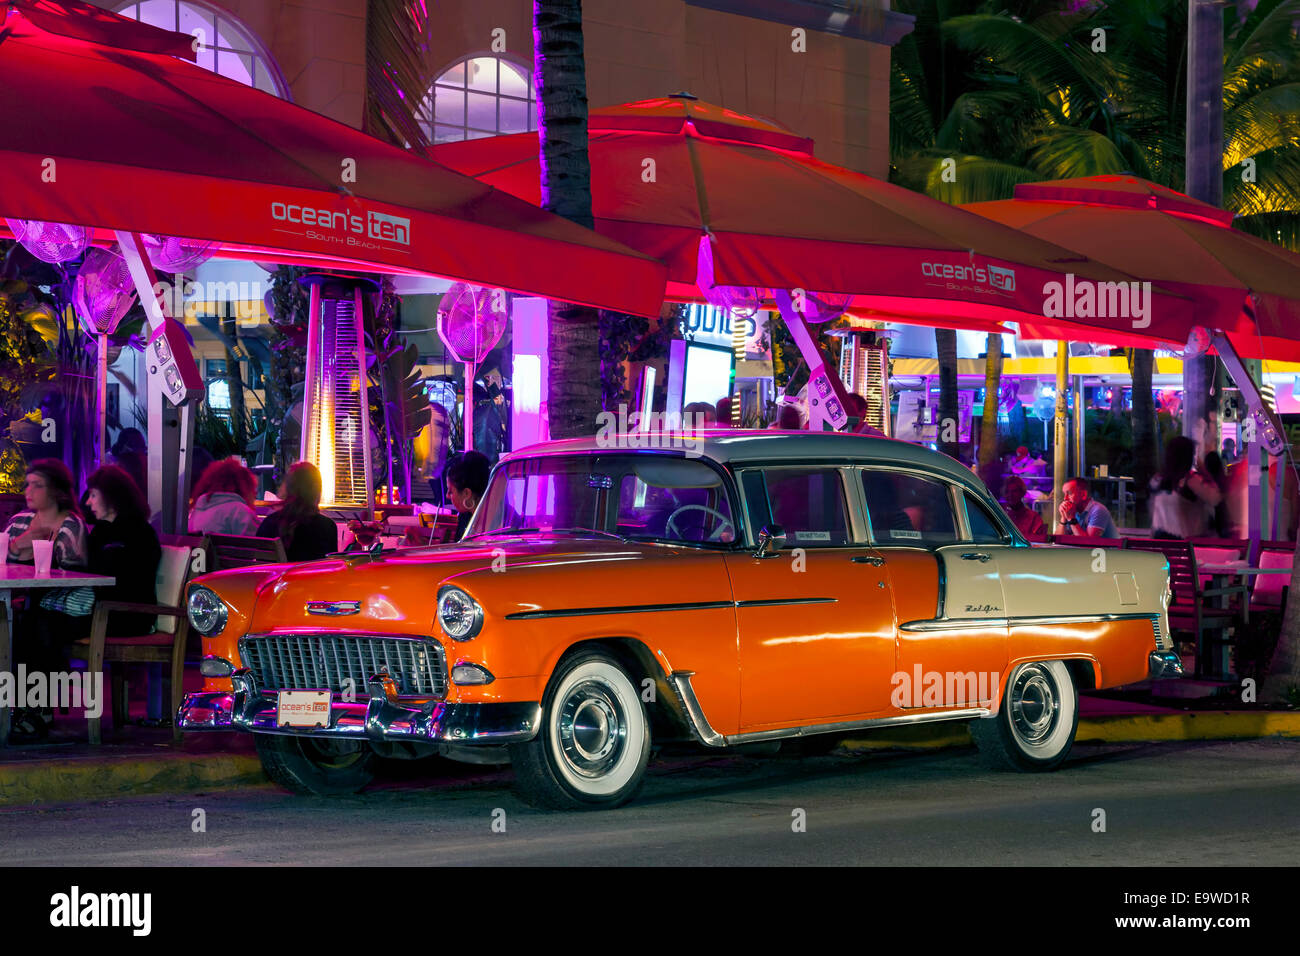 Orange and white two-tone 1955 Chevy Chevrolet Bel Air 4-door sedan parked in front of Ocean's Ten on Deco Drive, Stock Photo